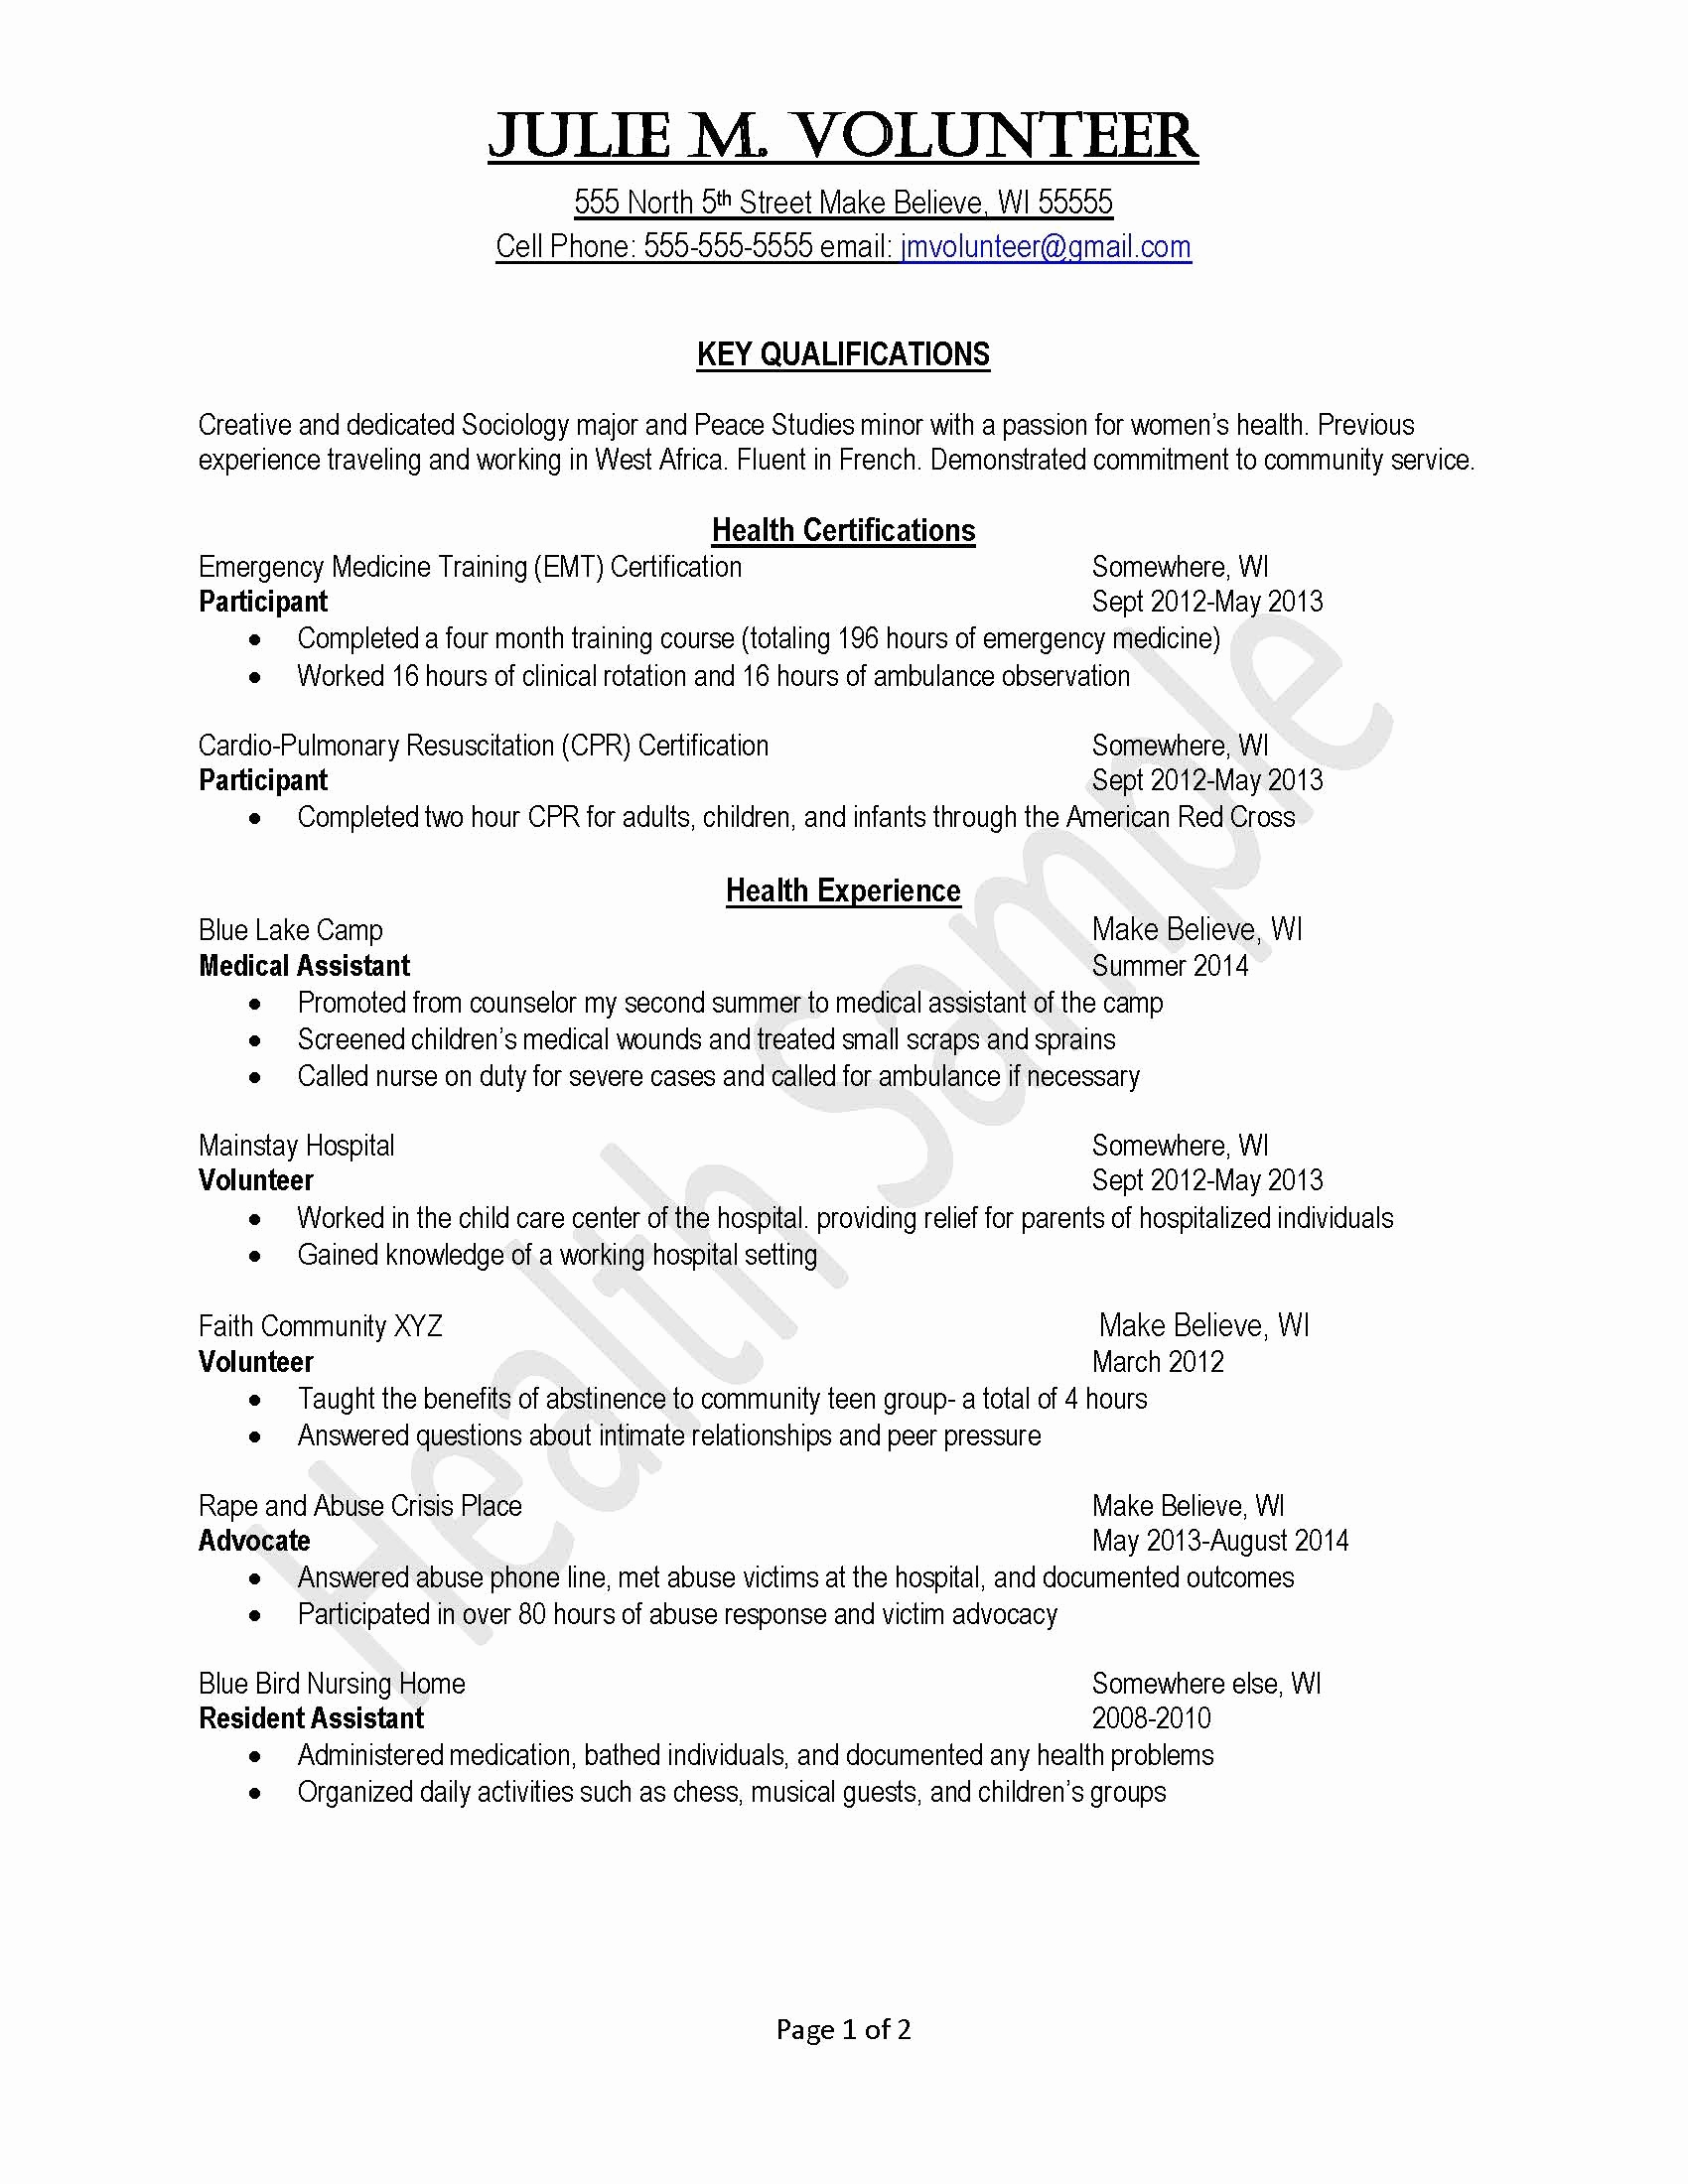 003 Volunteer Experience Essay Elementary School Resume Free Community Work Hospital Coordinator Job Description Church Example Coordinatormission Custom Template Definition Surprising Describe Your Examples Full